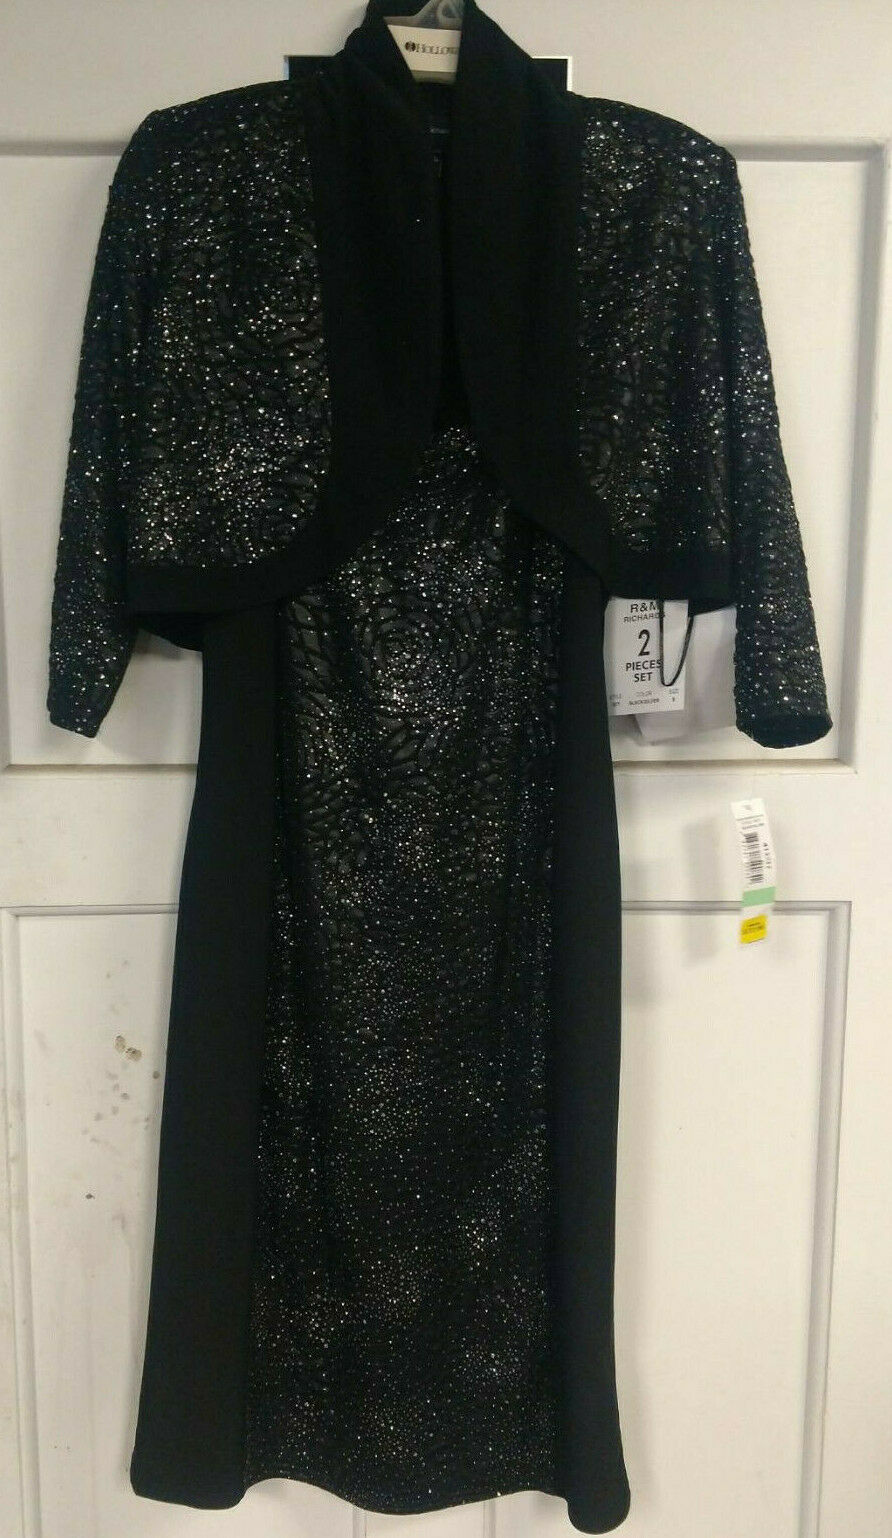 R & M RICHARDS Dress & Jacket Size 8 Black Blingy Mother's/Party NWT